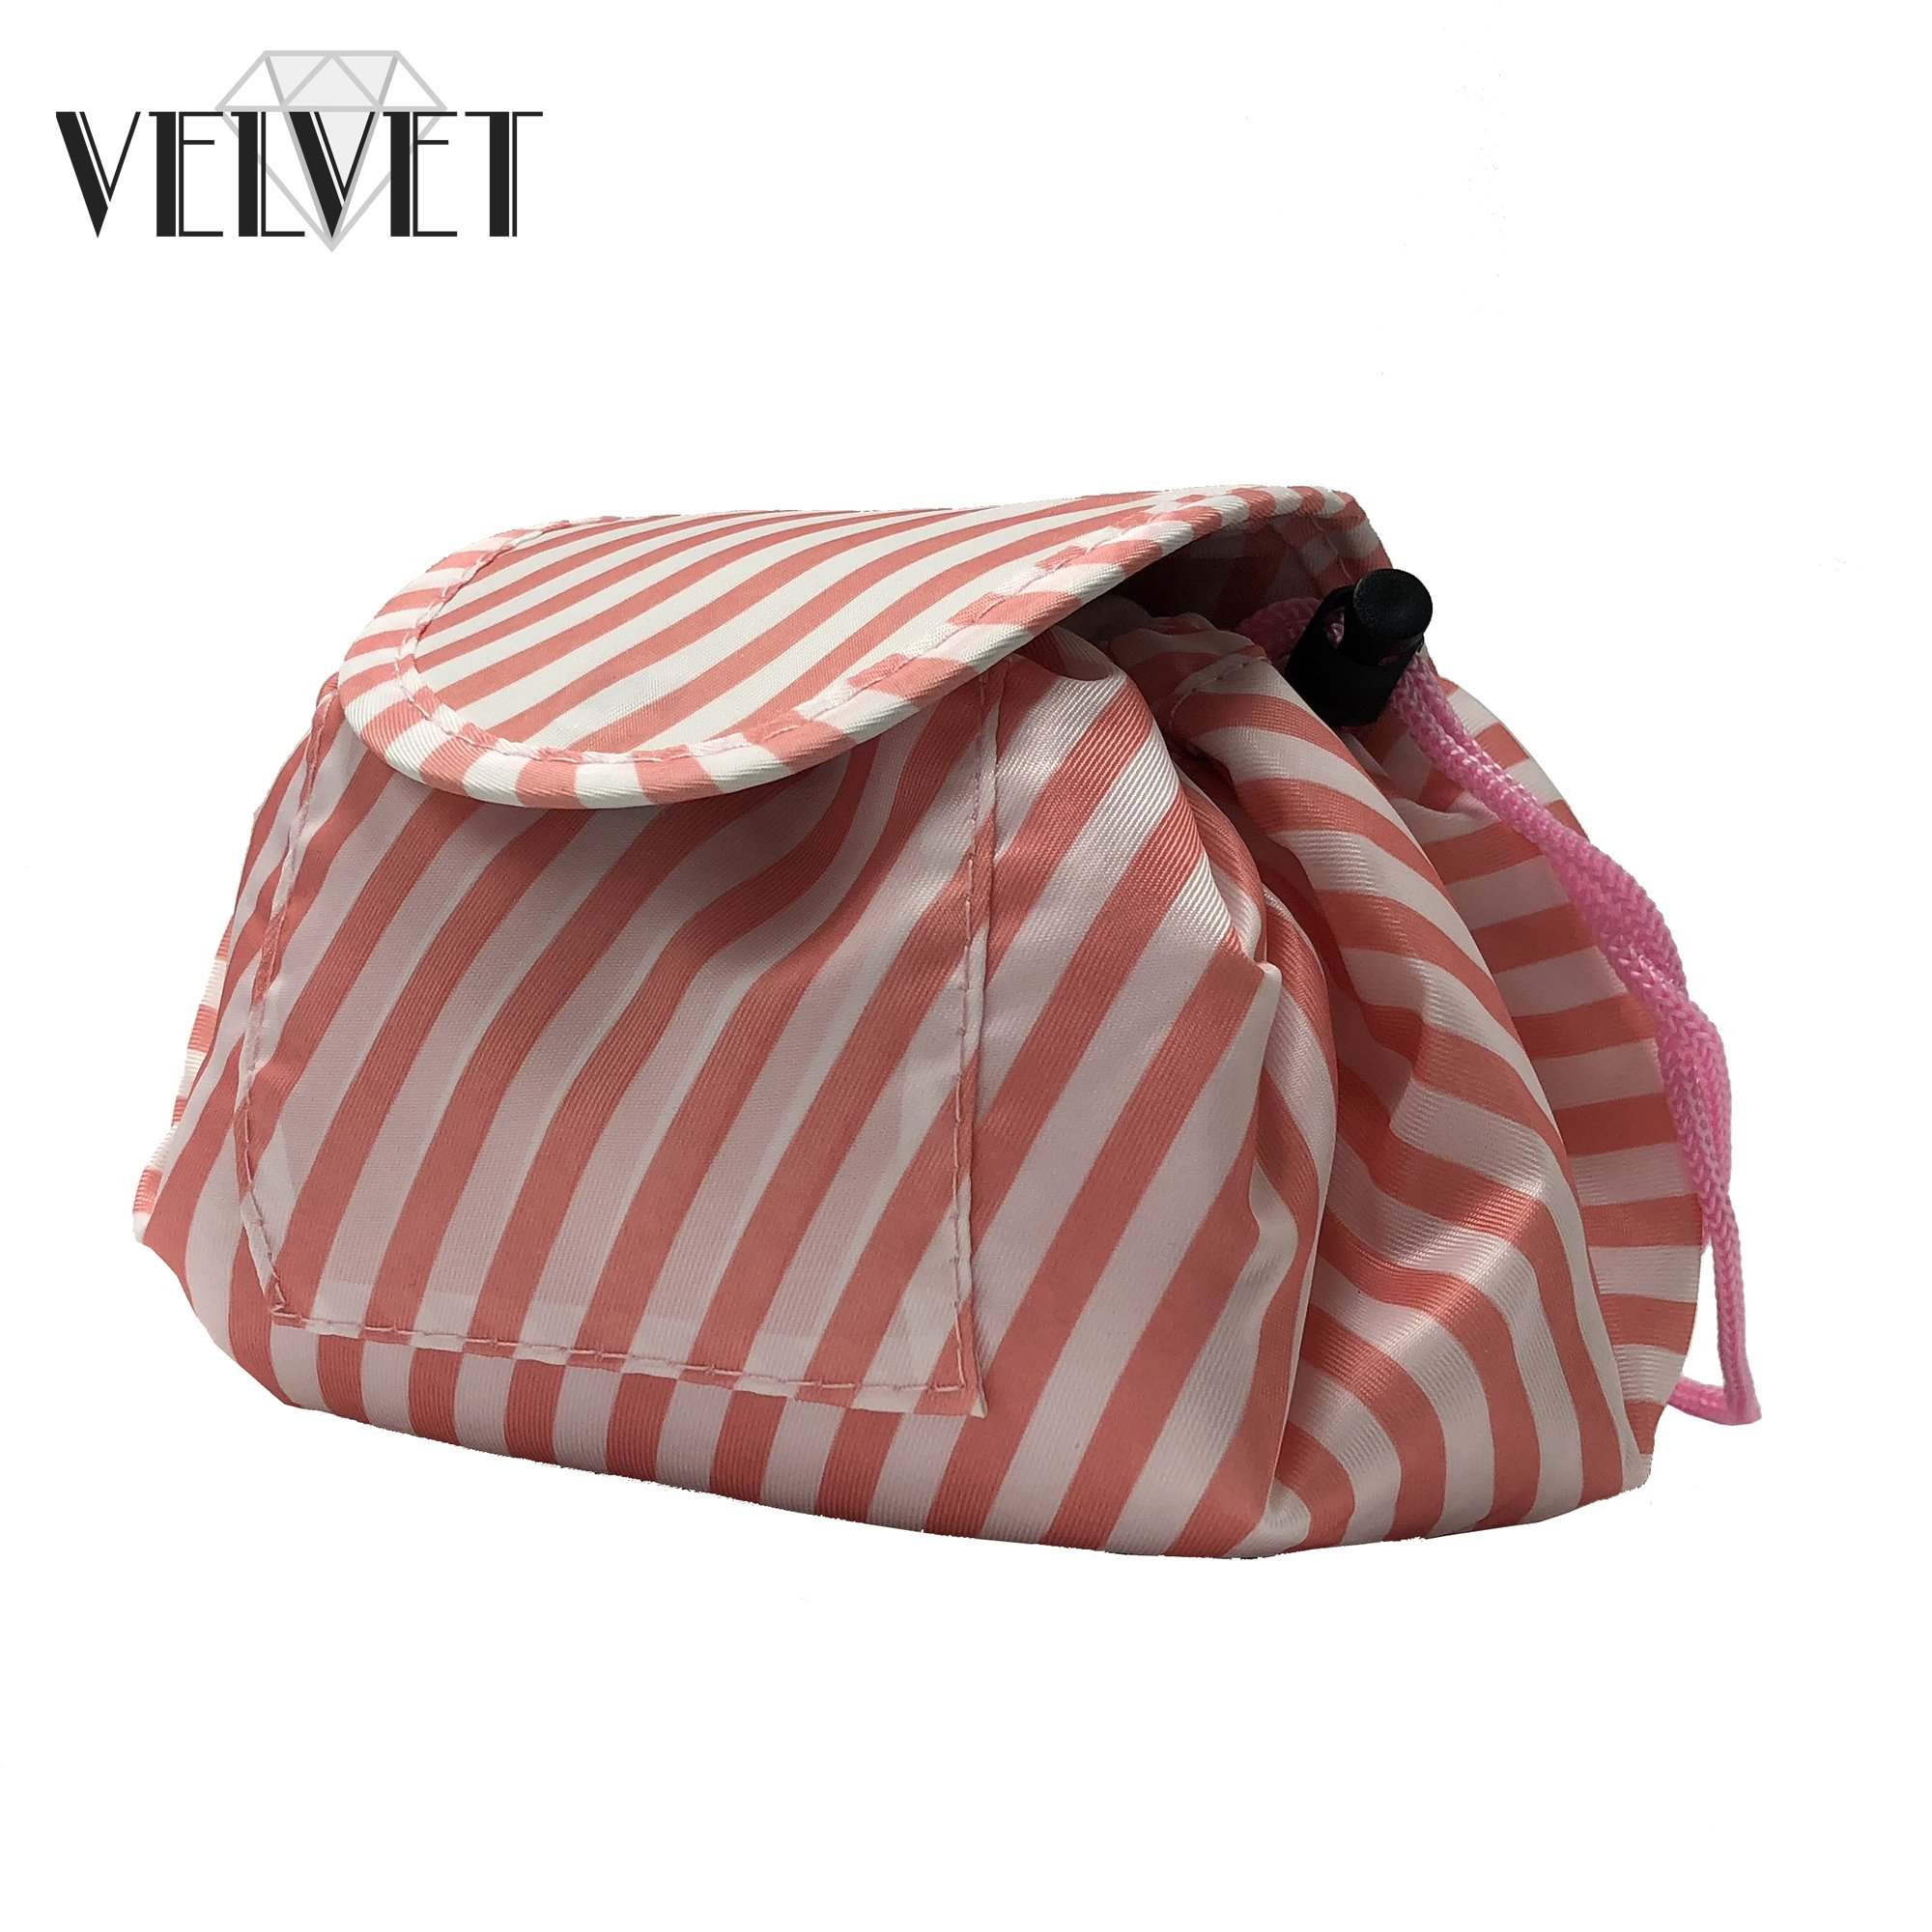 Toiletry Travel Bag   Lazy Drawstring Makeup Organizer with Magnetic Snap   Waterproof Cosmetic Pouch for Women, Men, Girls (Large 18 inches, White/Pink Stripes) by VelvetBags (Image #4)